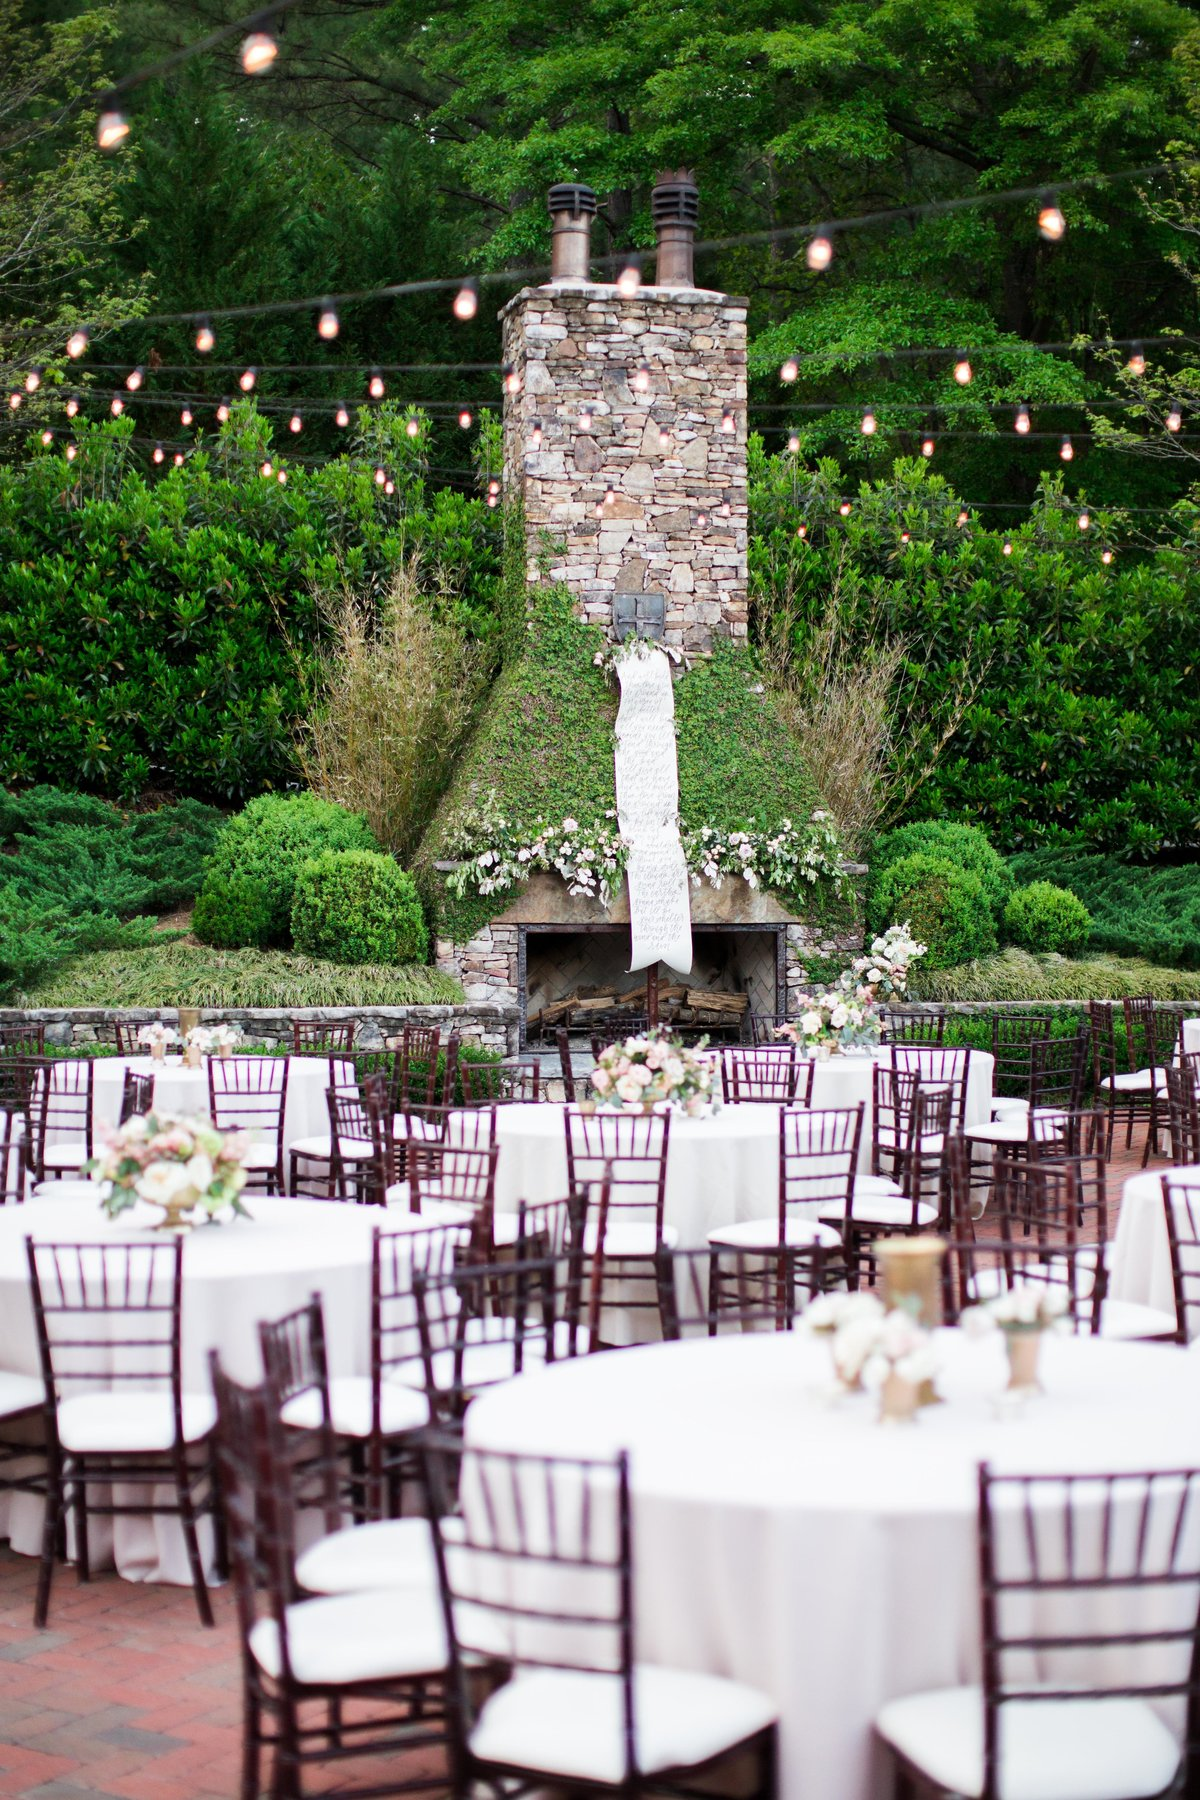 Windwood_Equestrian_Outdoor_Wedding_Venue_Alabama_Farm_Bride040